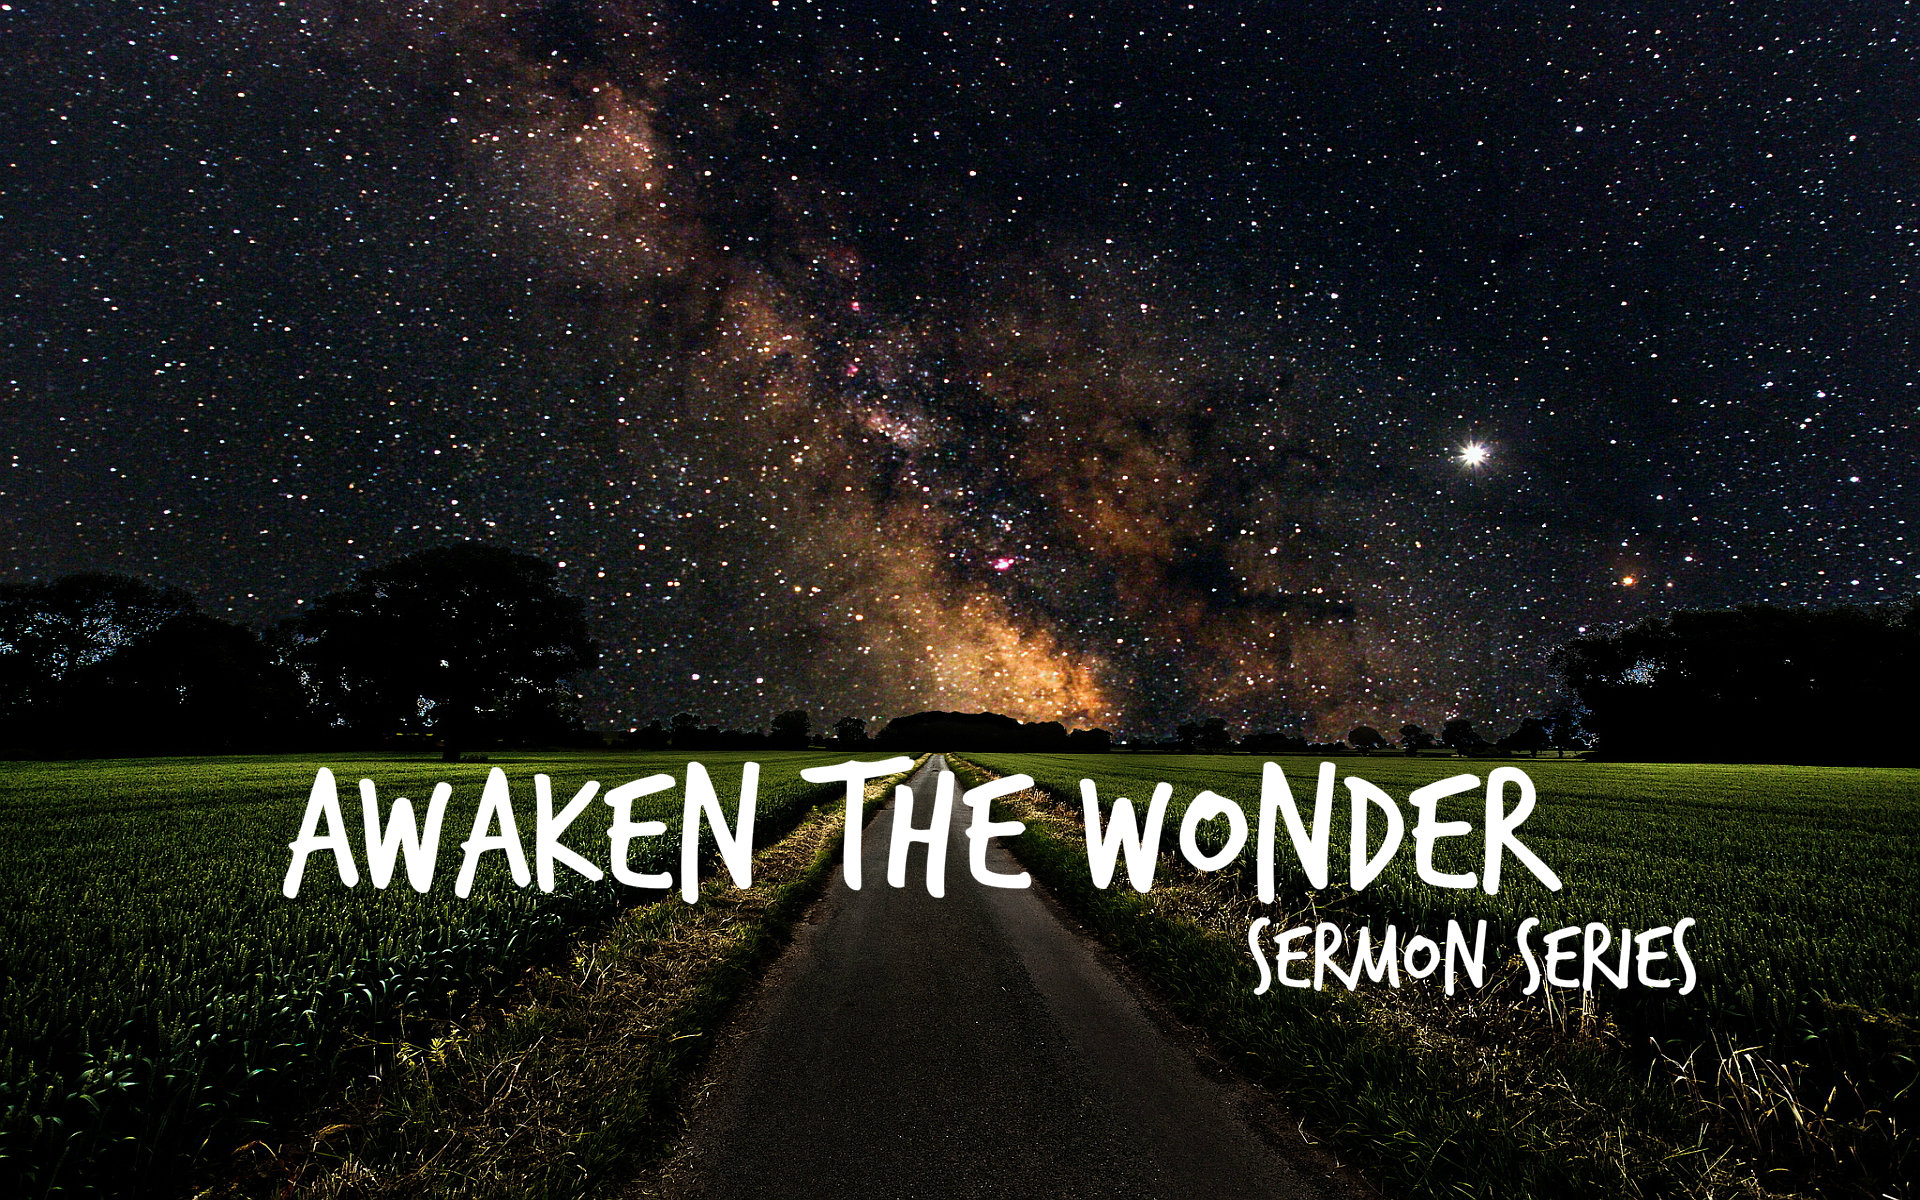 awaken-sermon-series